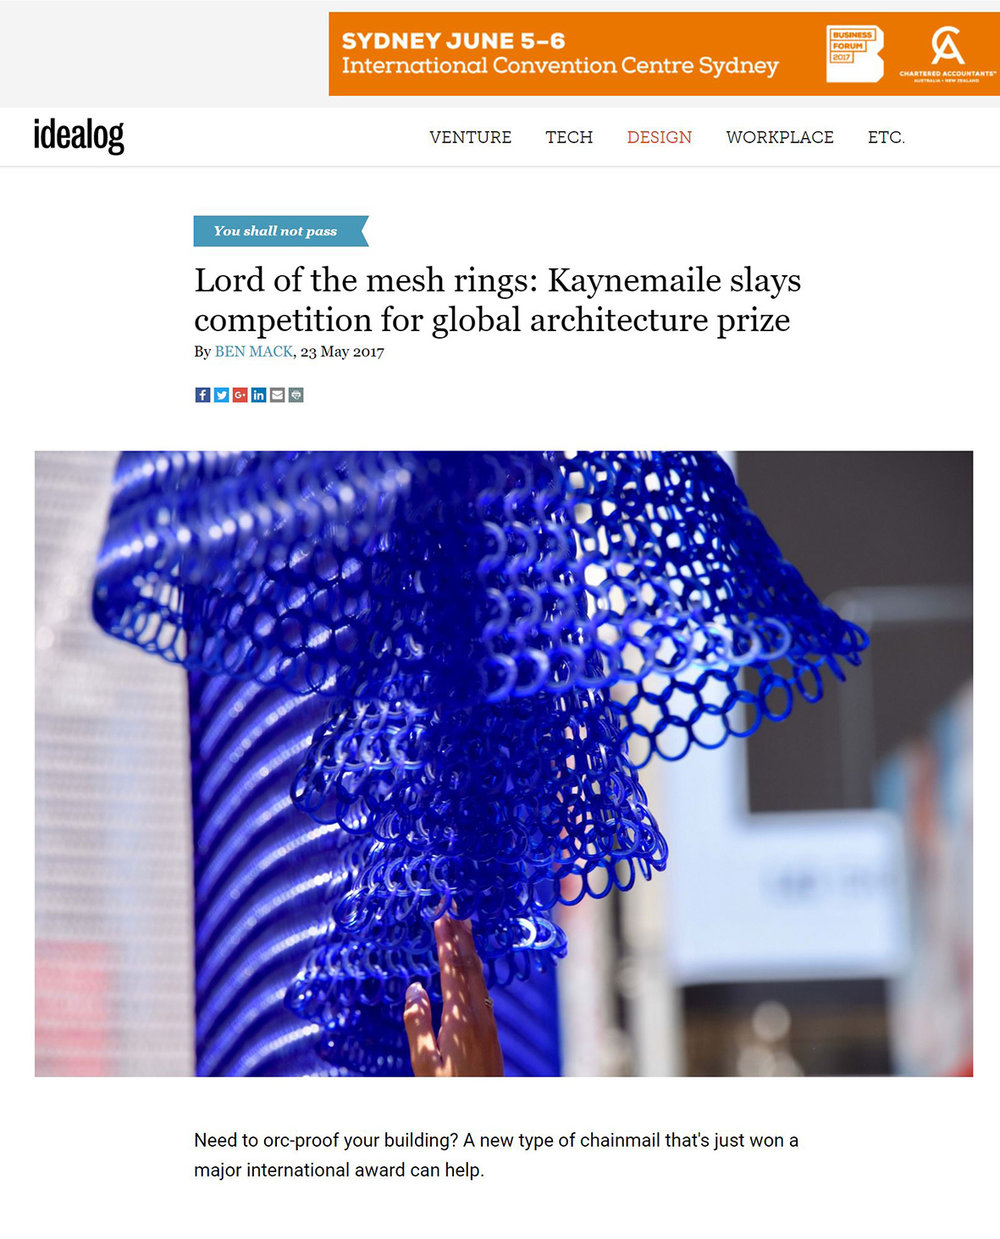 Idealog: Kaynemaile slays competition for global architecture prize